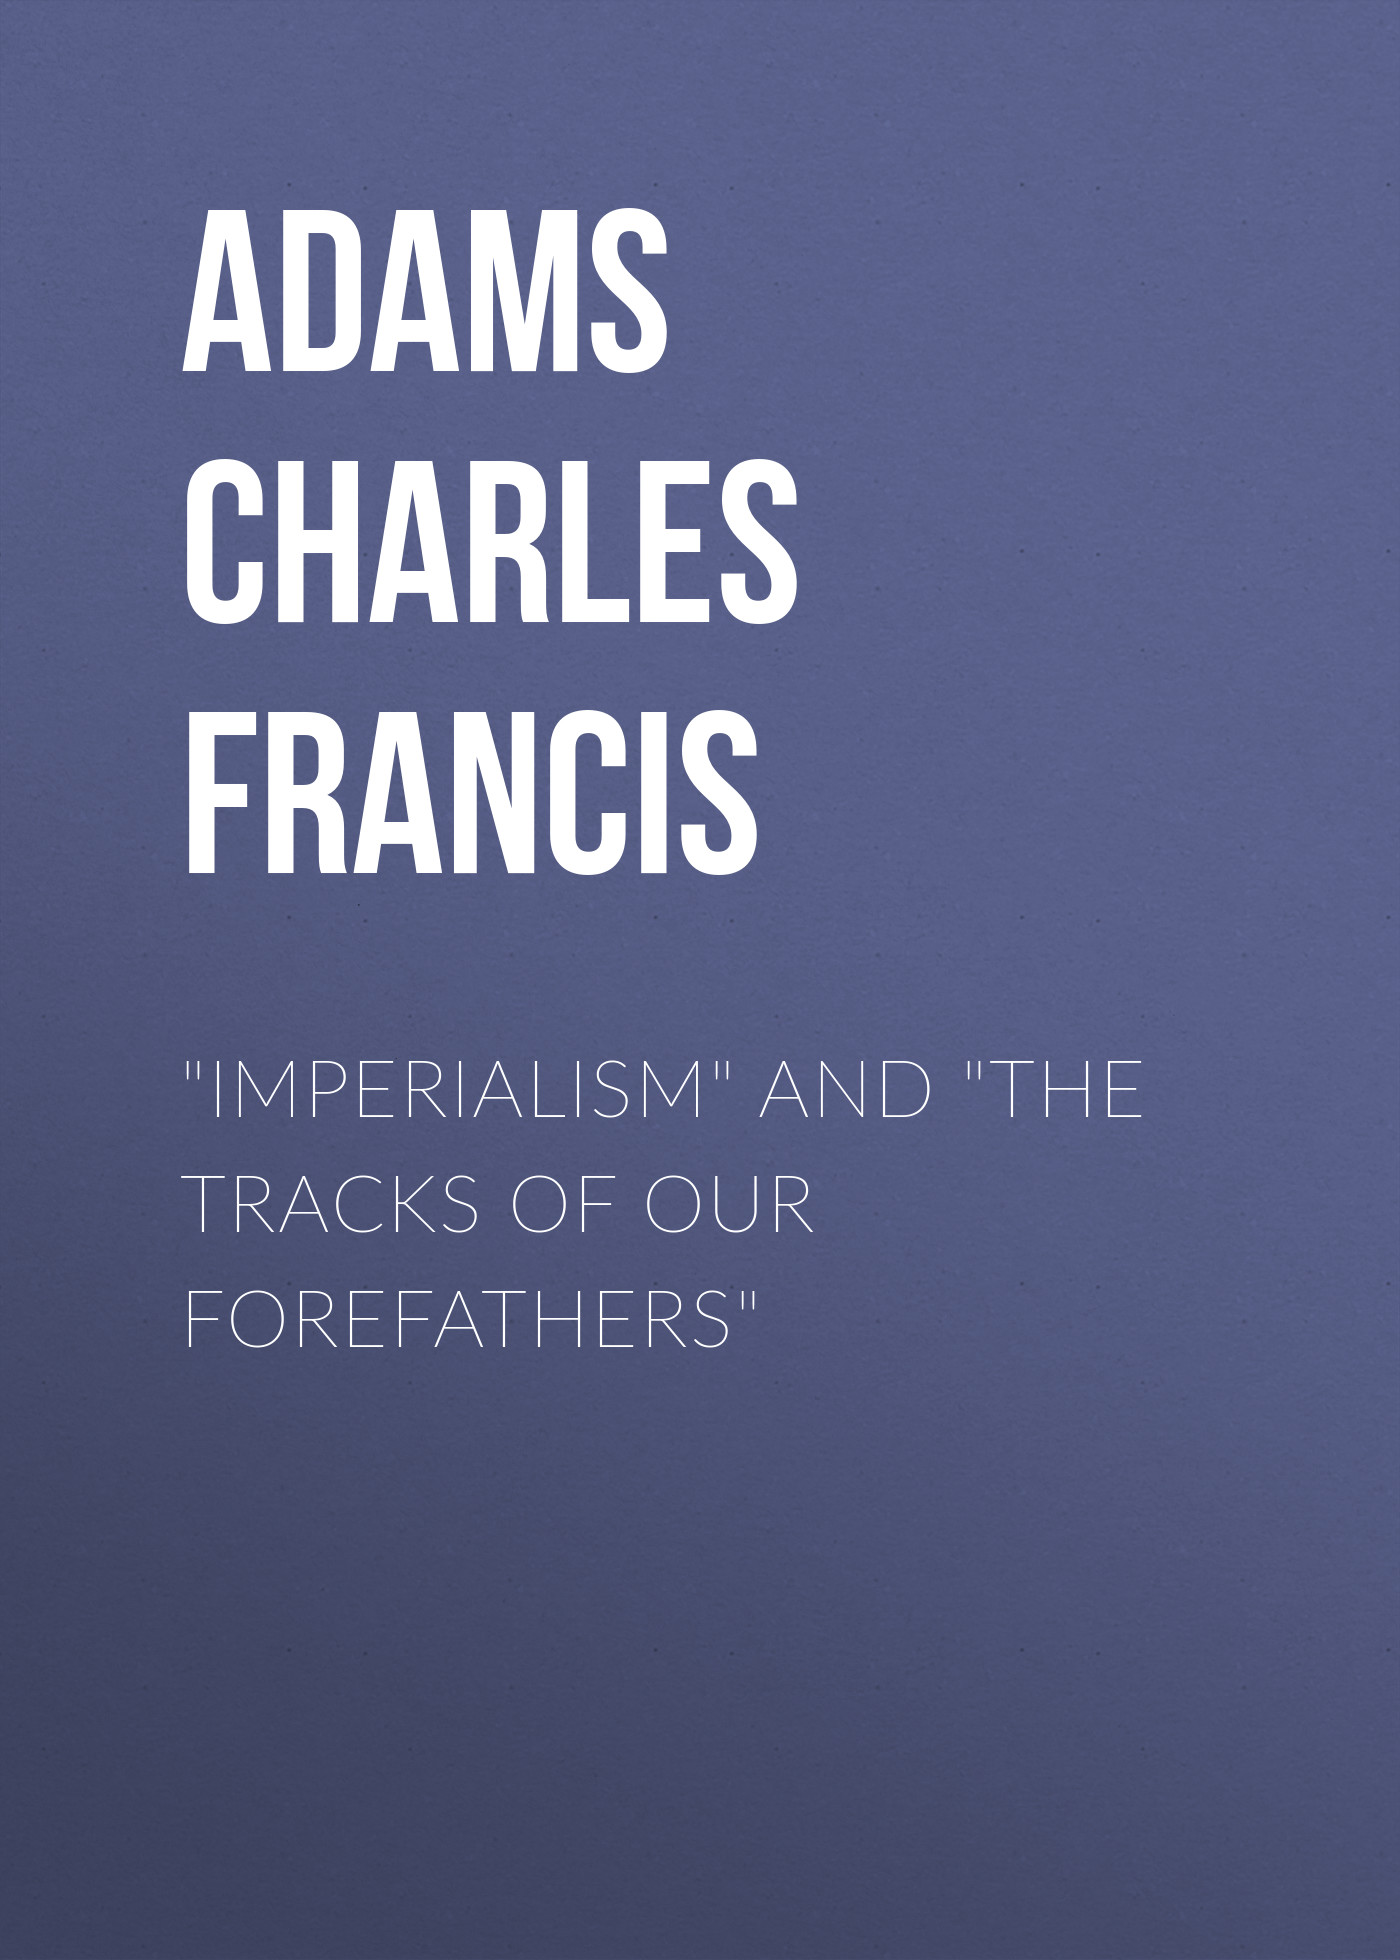 Adams Charles Francis Imperialism and The Tracks of Our Forefathers panel microphone hidden surveillance mic cctv security agc pick up audio rca sound monitor